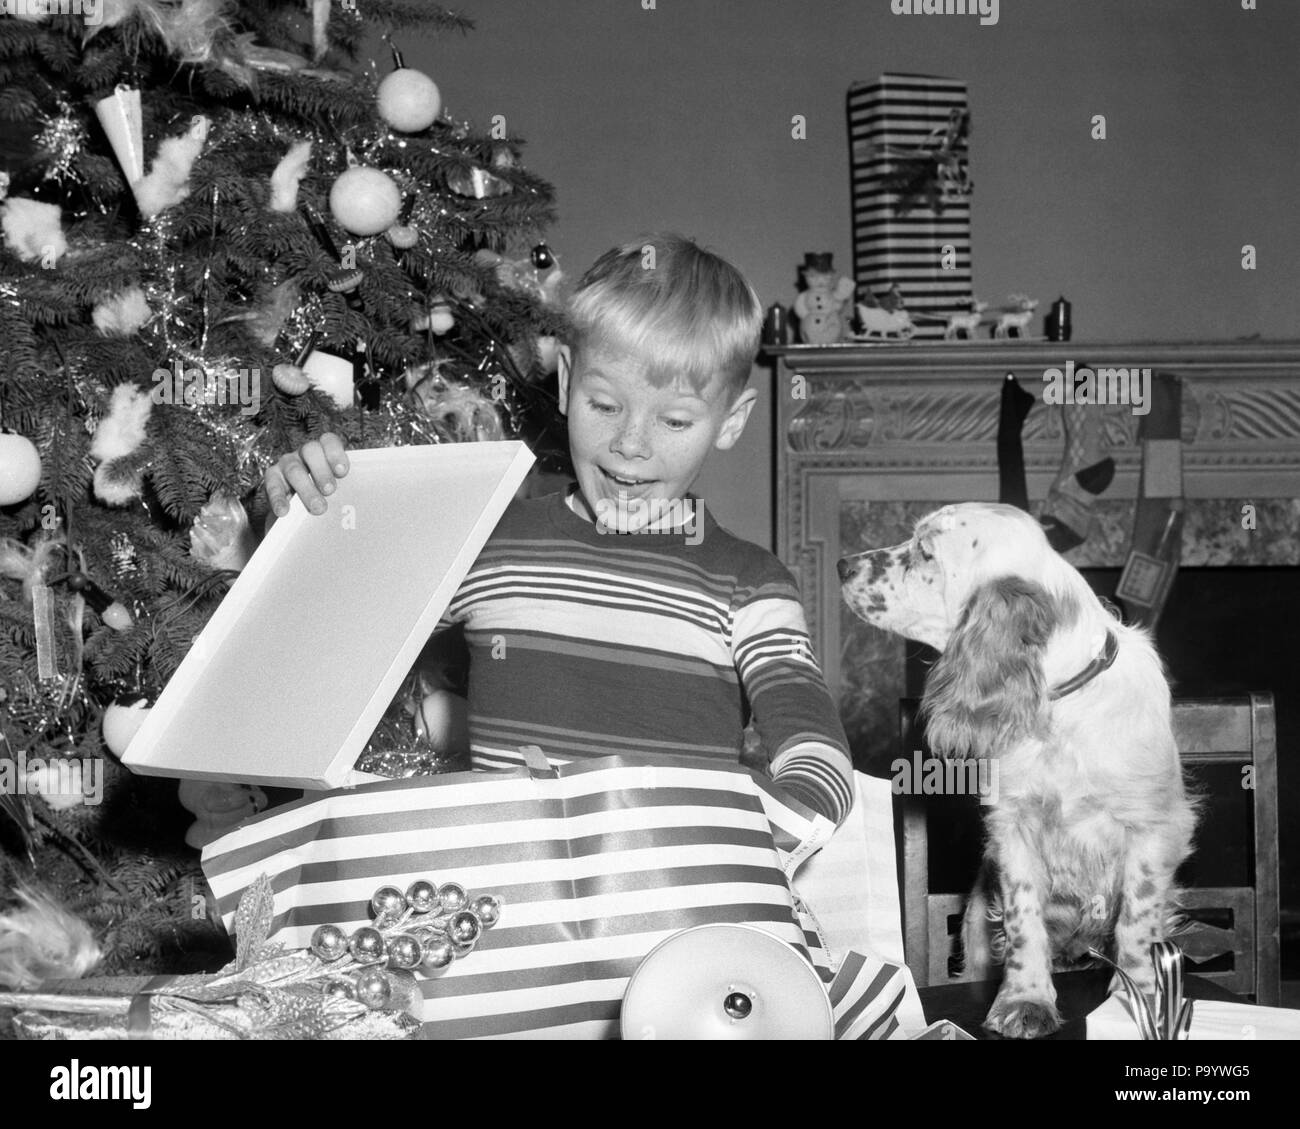 1950s SURPRISED BOY OPENING CHRISTMAS PRESENT WITH DOG WATCHING BY TREE - x2069 DEB001 HARS MALES EXPRESSIONS B&W DREAMS HAPPINESS MAMMALS CANINES EXCITEMENT DELIGHTED DECEMBER POOCH DECEMBER 25 DEB001 CANINE EMOTION EMOTIONAL EMOTIONS JUVENILES MAMMAL BLACK AND WHITE CAUCASIAN ETHNICITY OLD FASHIONED - Stock Image